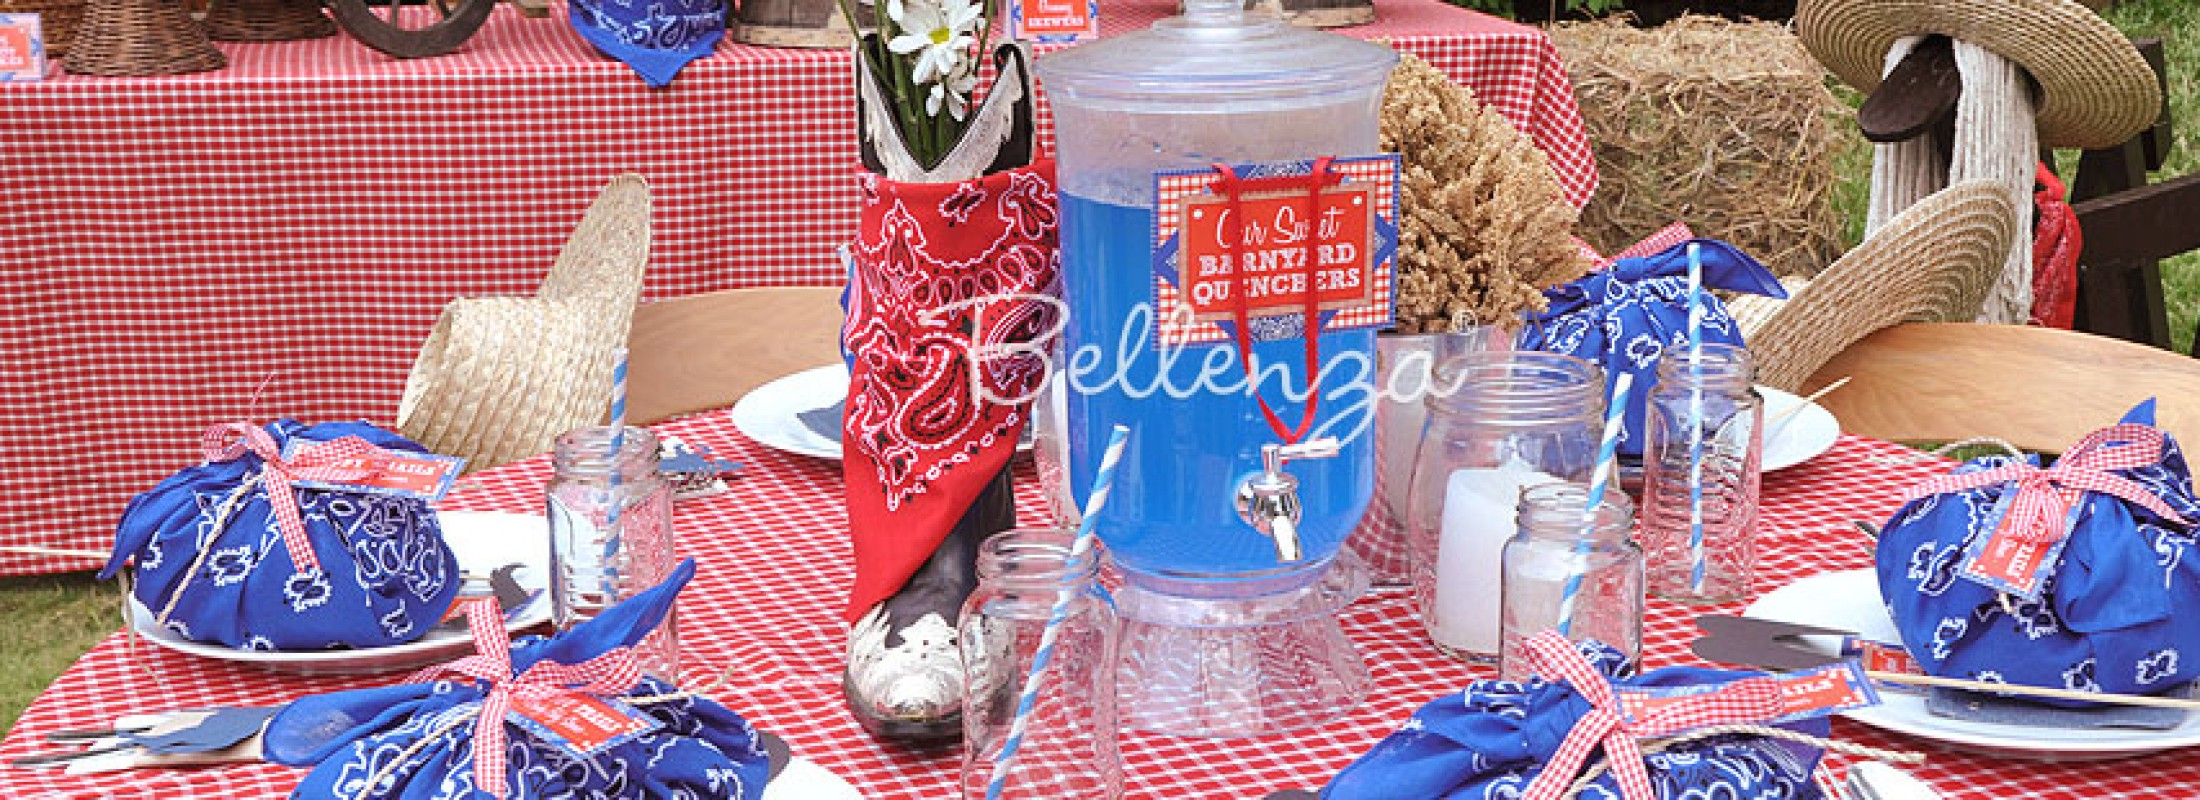 DIY Cowboy Party Table Centerpiece and Table Settings